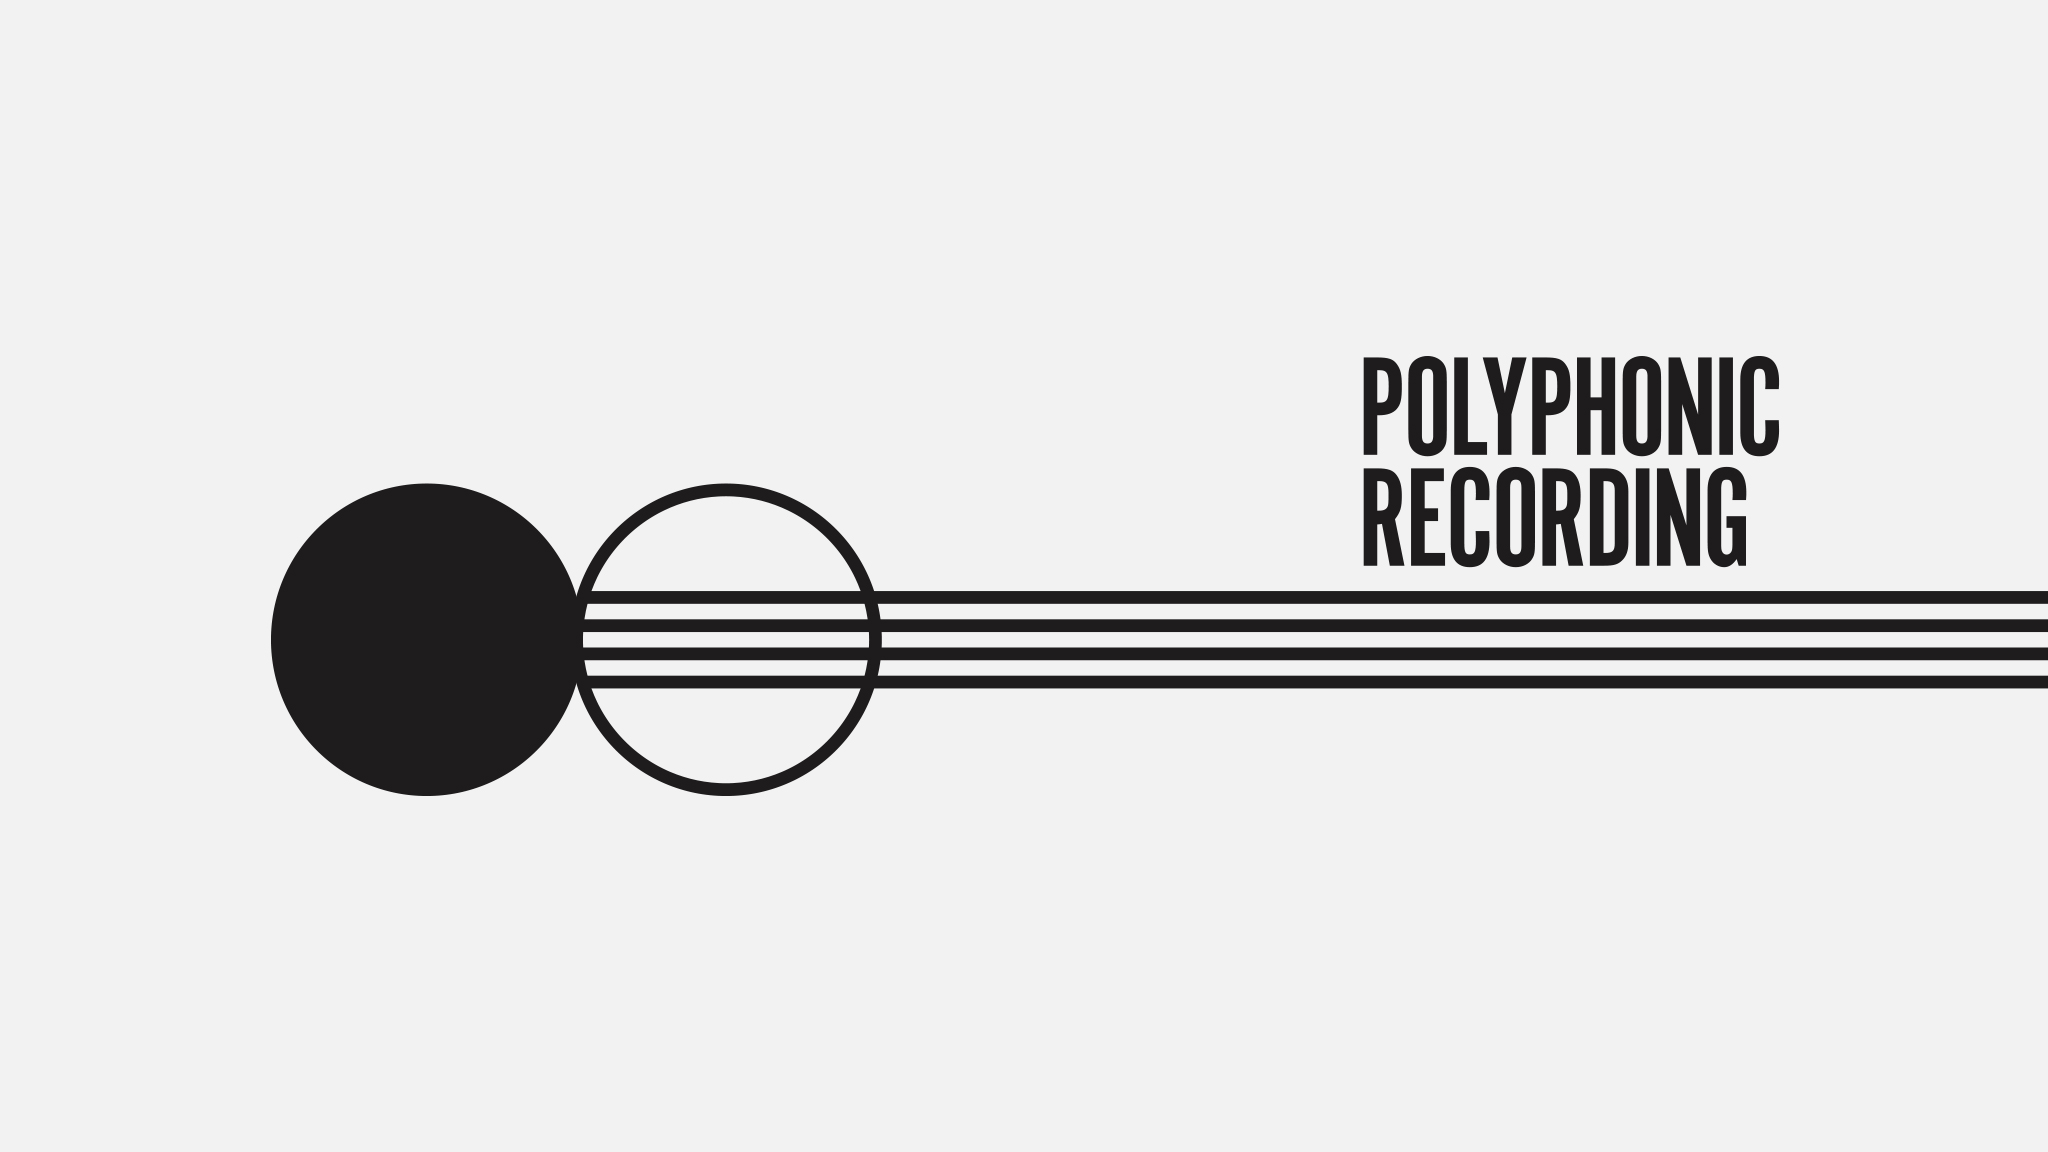 polyphonic-recording-Facebook full size.jpg